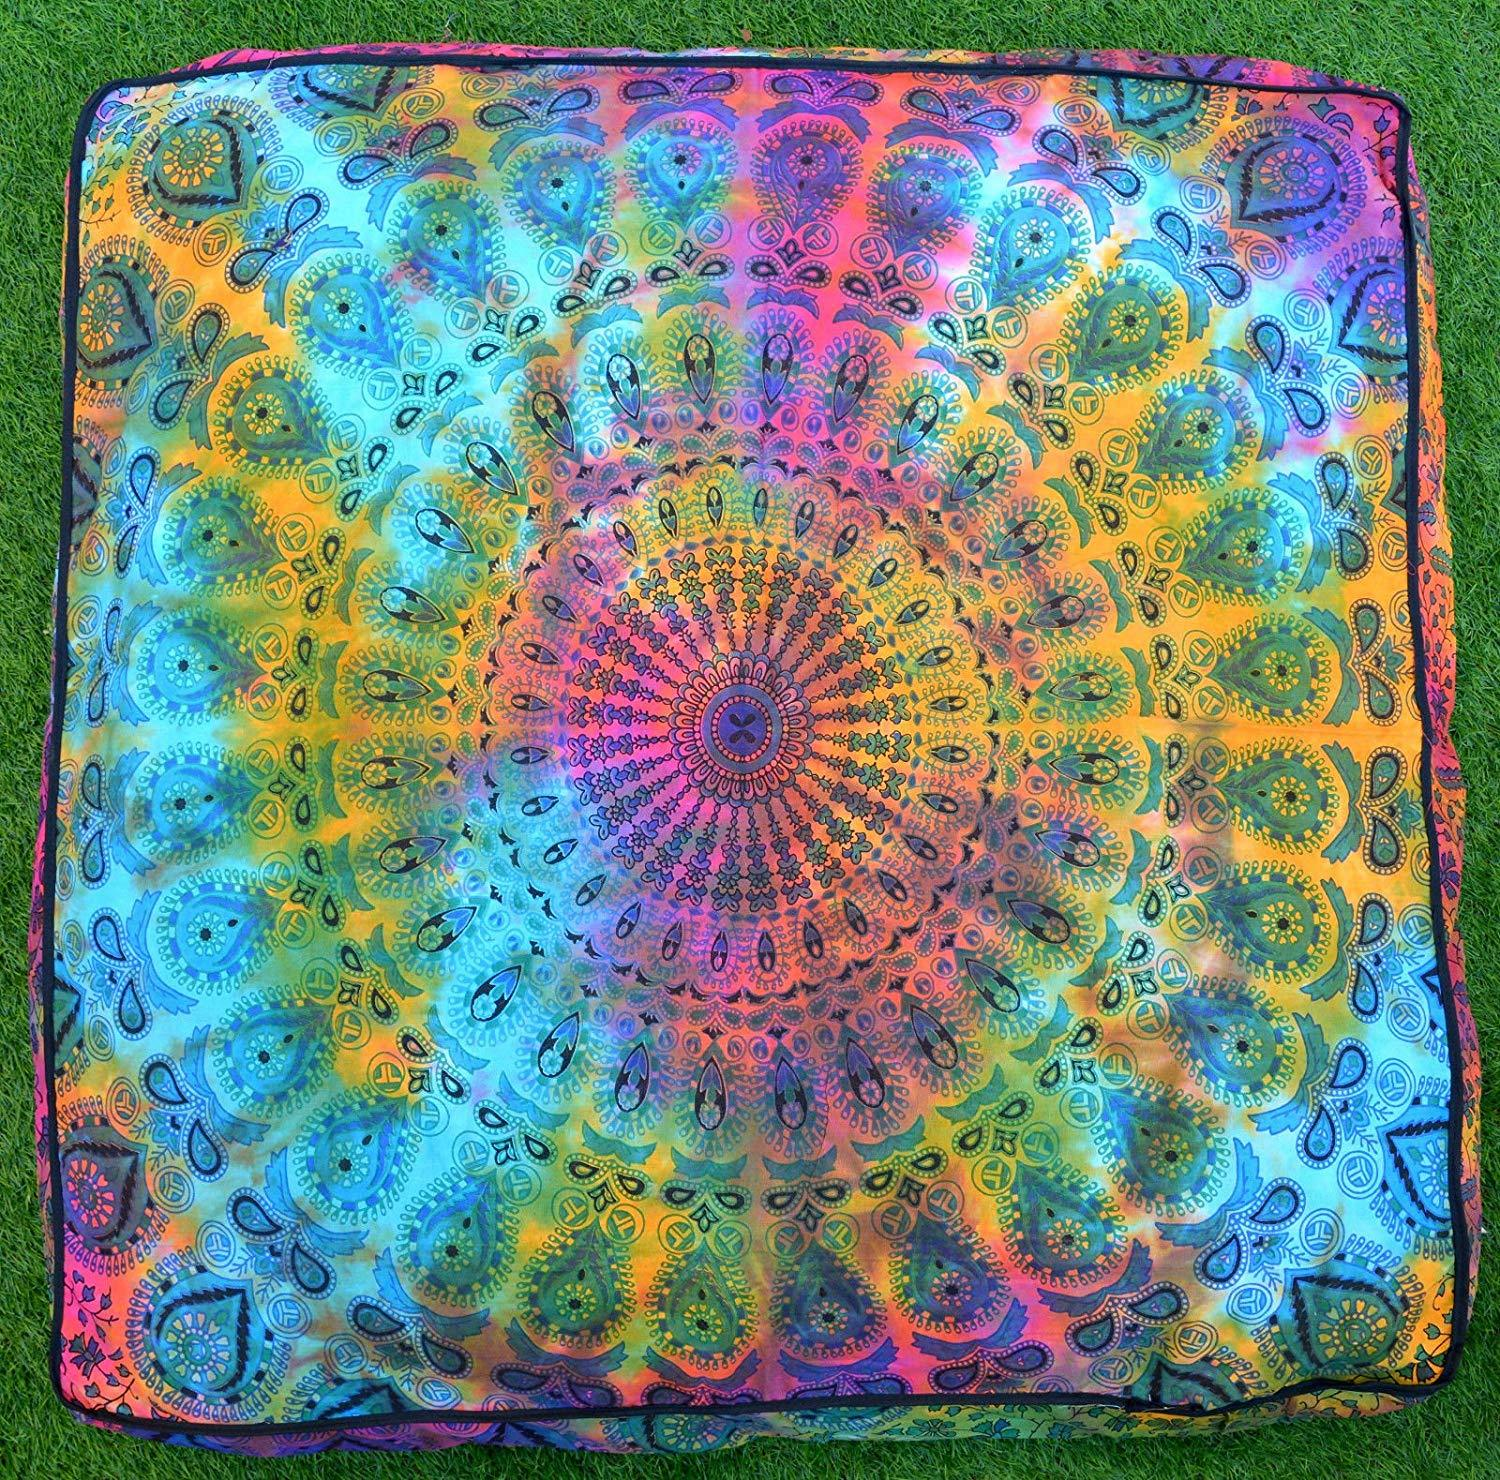 Primary image for Tie Dye Mandala 35 Inches Square Pouf Cover India Handmade Pet Dog Bed Bohemian